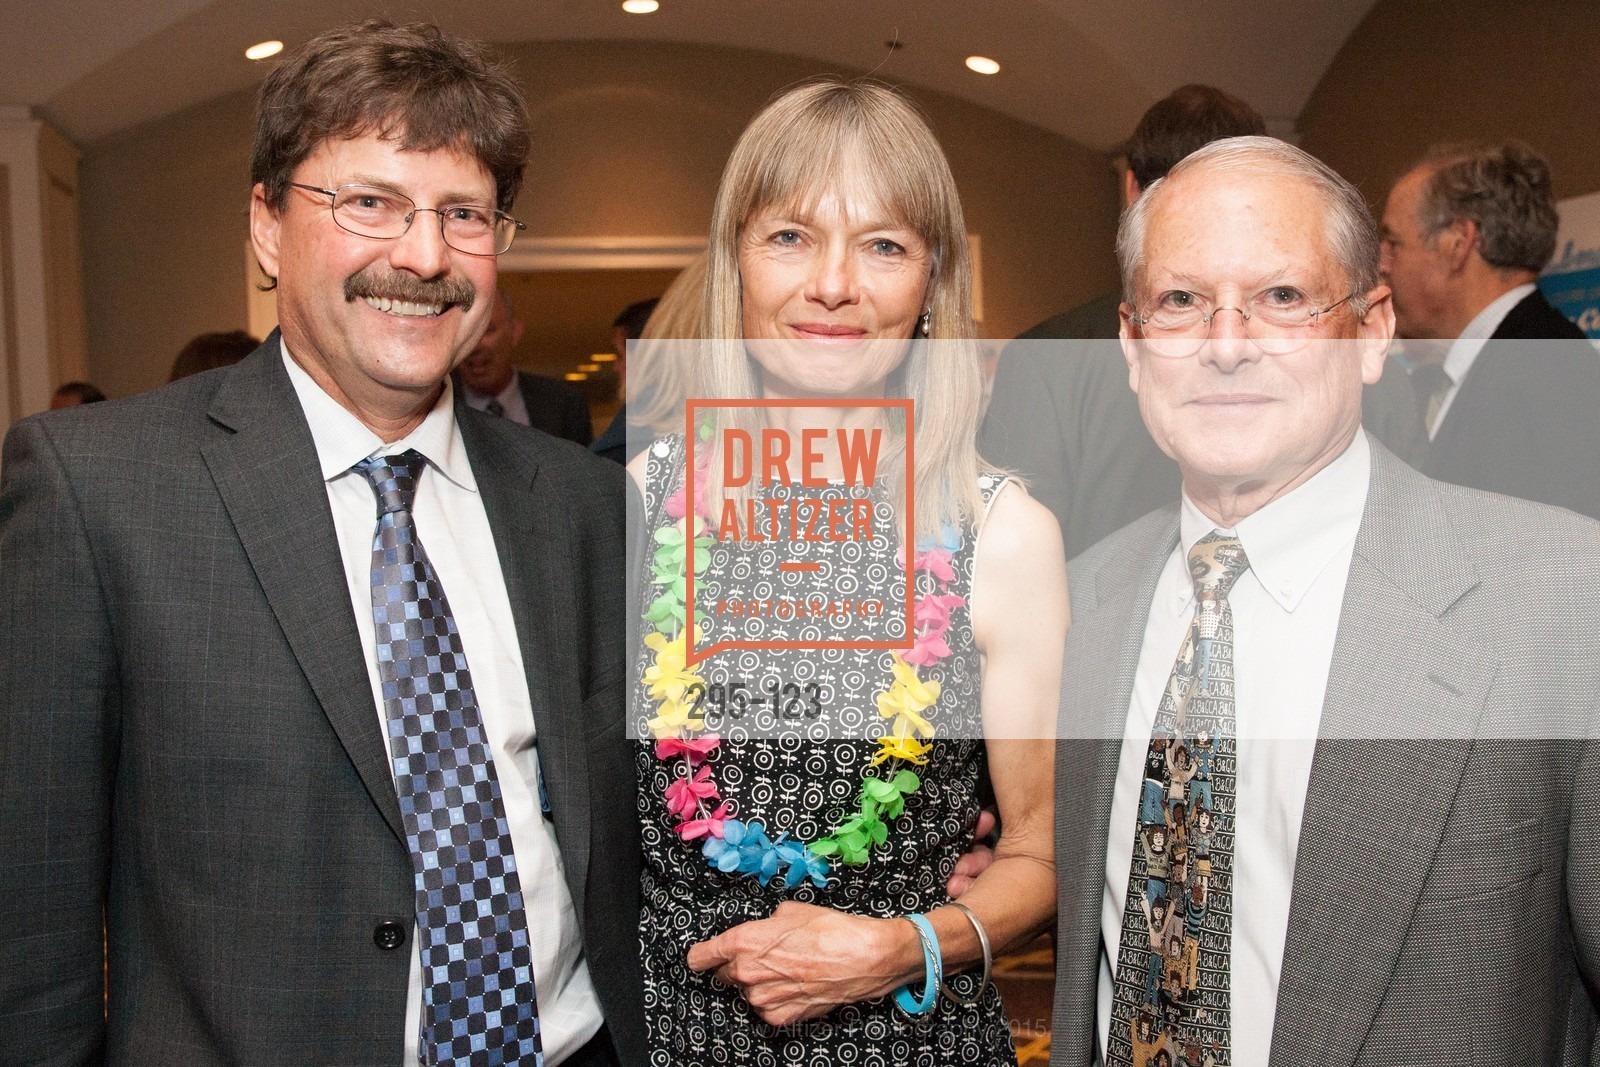 David Anderson, Mette Frimodt, John Dissemyer, 2015 Boys and Girls Club Annual Gala, The Fairmont San Francisco. 950 Mason St, May 20th, 2015,Drew Altizer, Drew Altizer Photography, full-service agency, private events, San Francisco photographer, photographer california